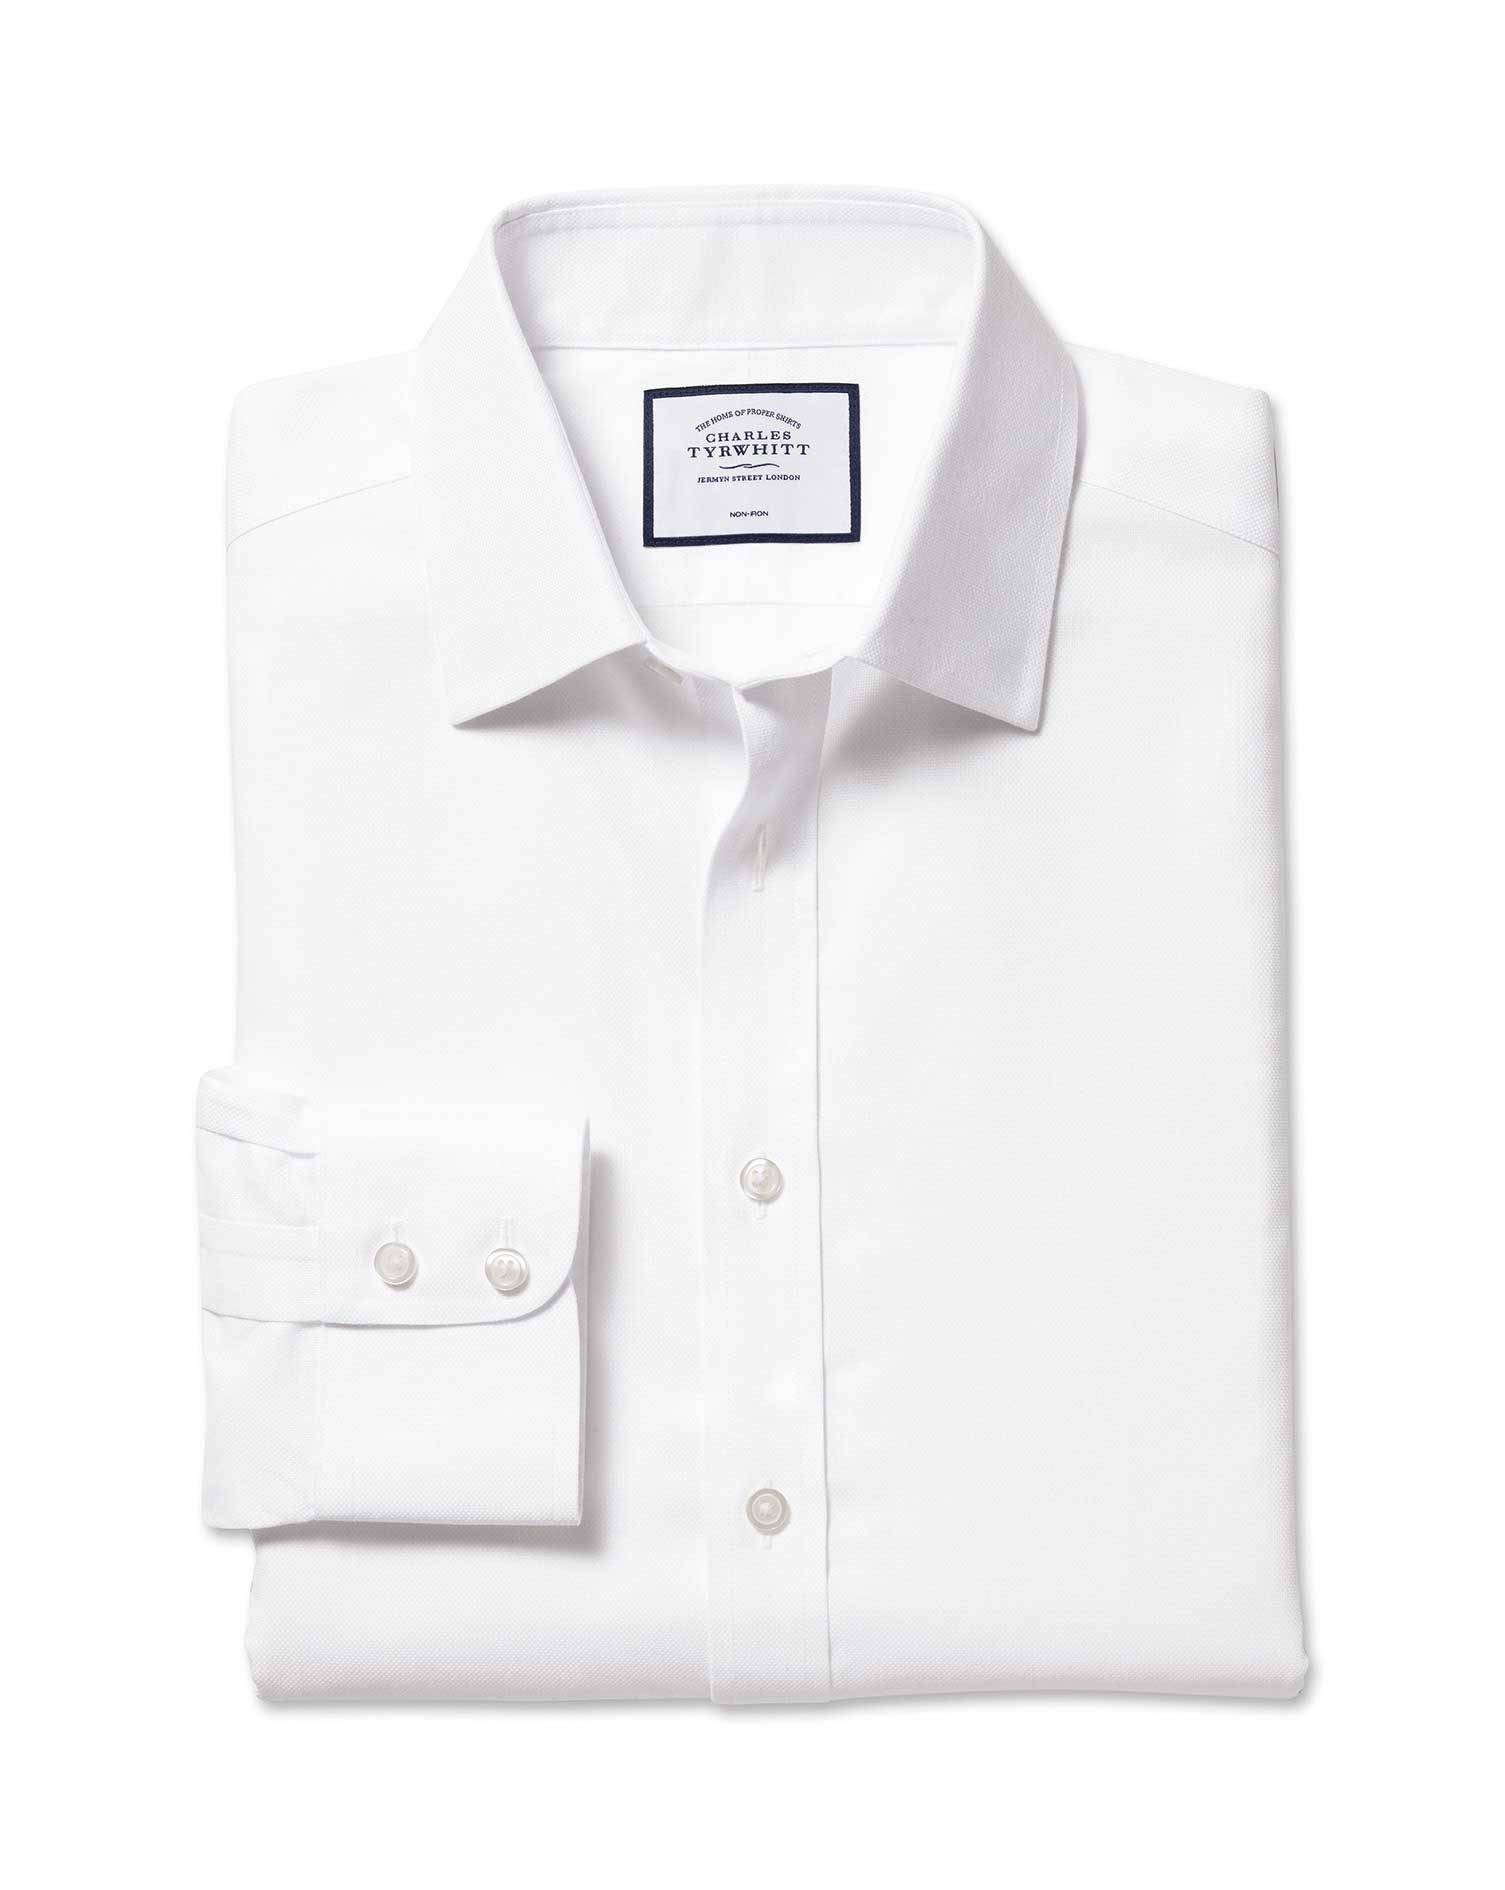 Extra Slim Fit Non-Iron Royal Panama White Cotton Formal Shirt Single Cuff Size 15/32 by Charles Tyr